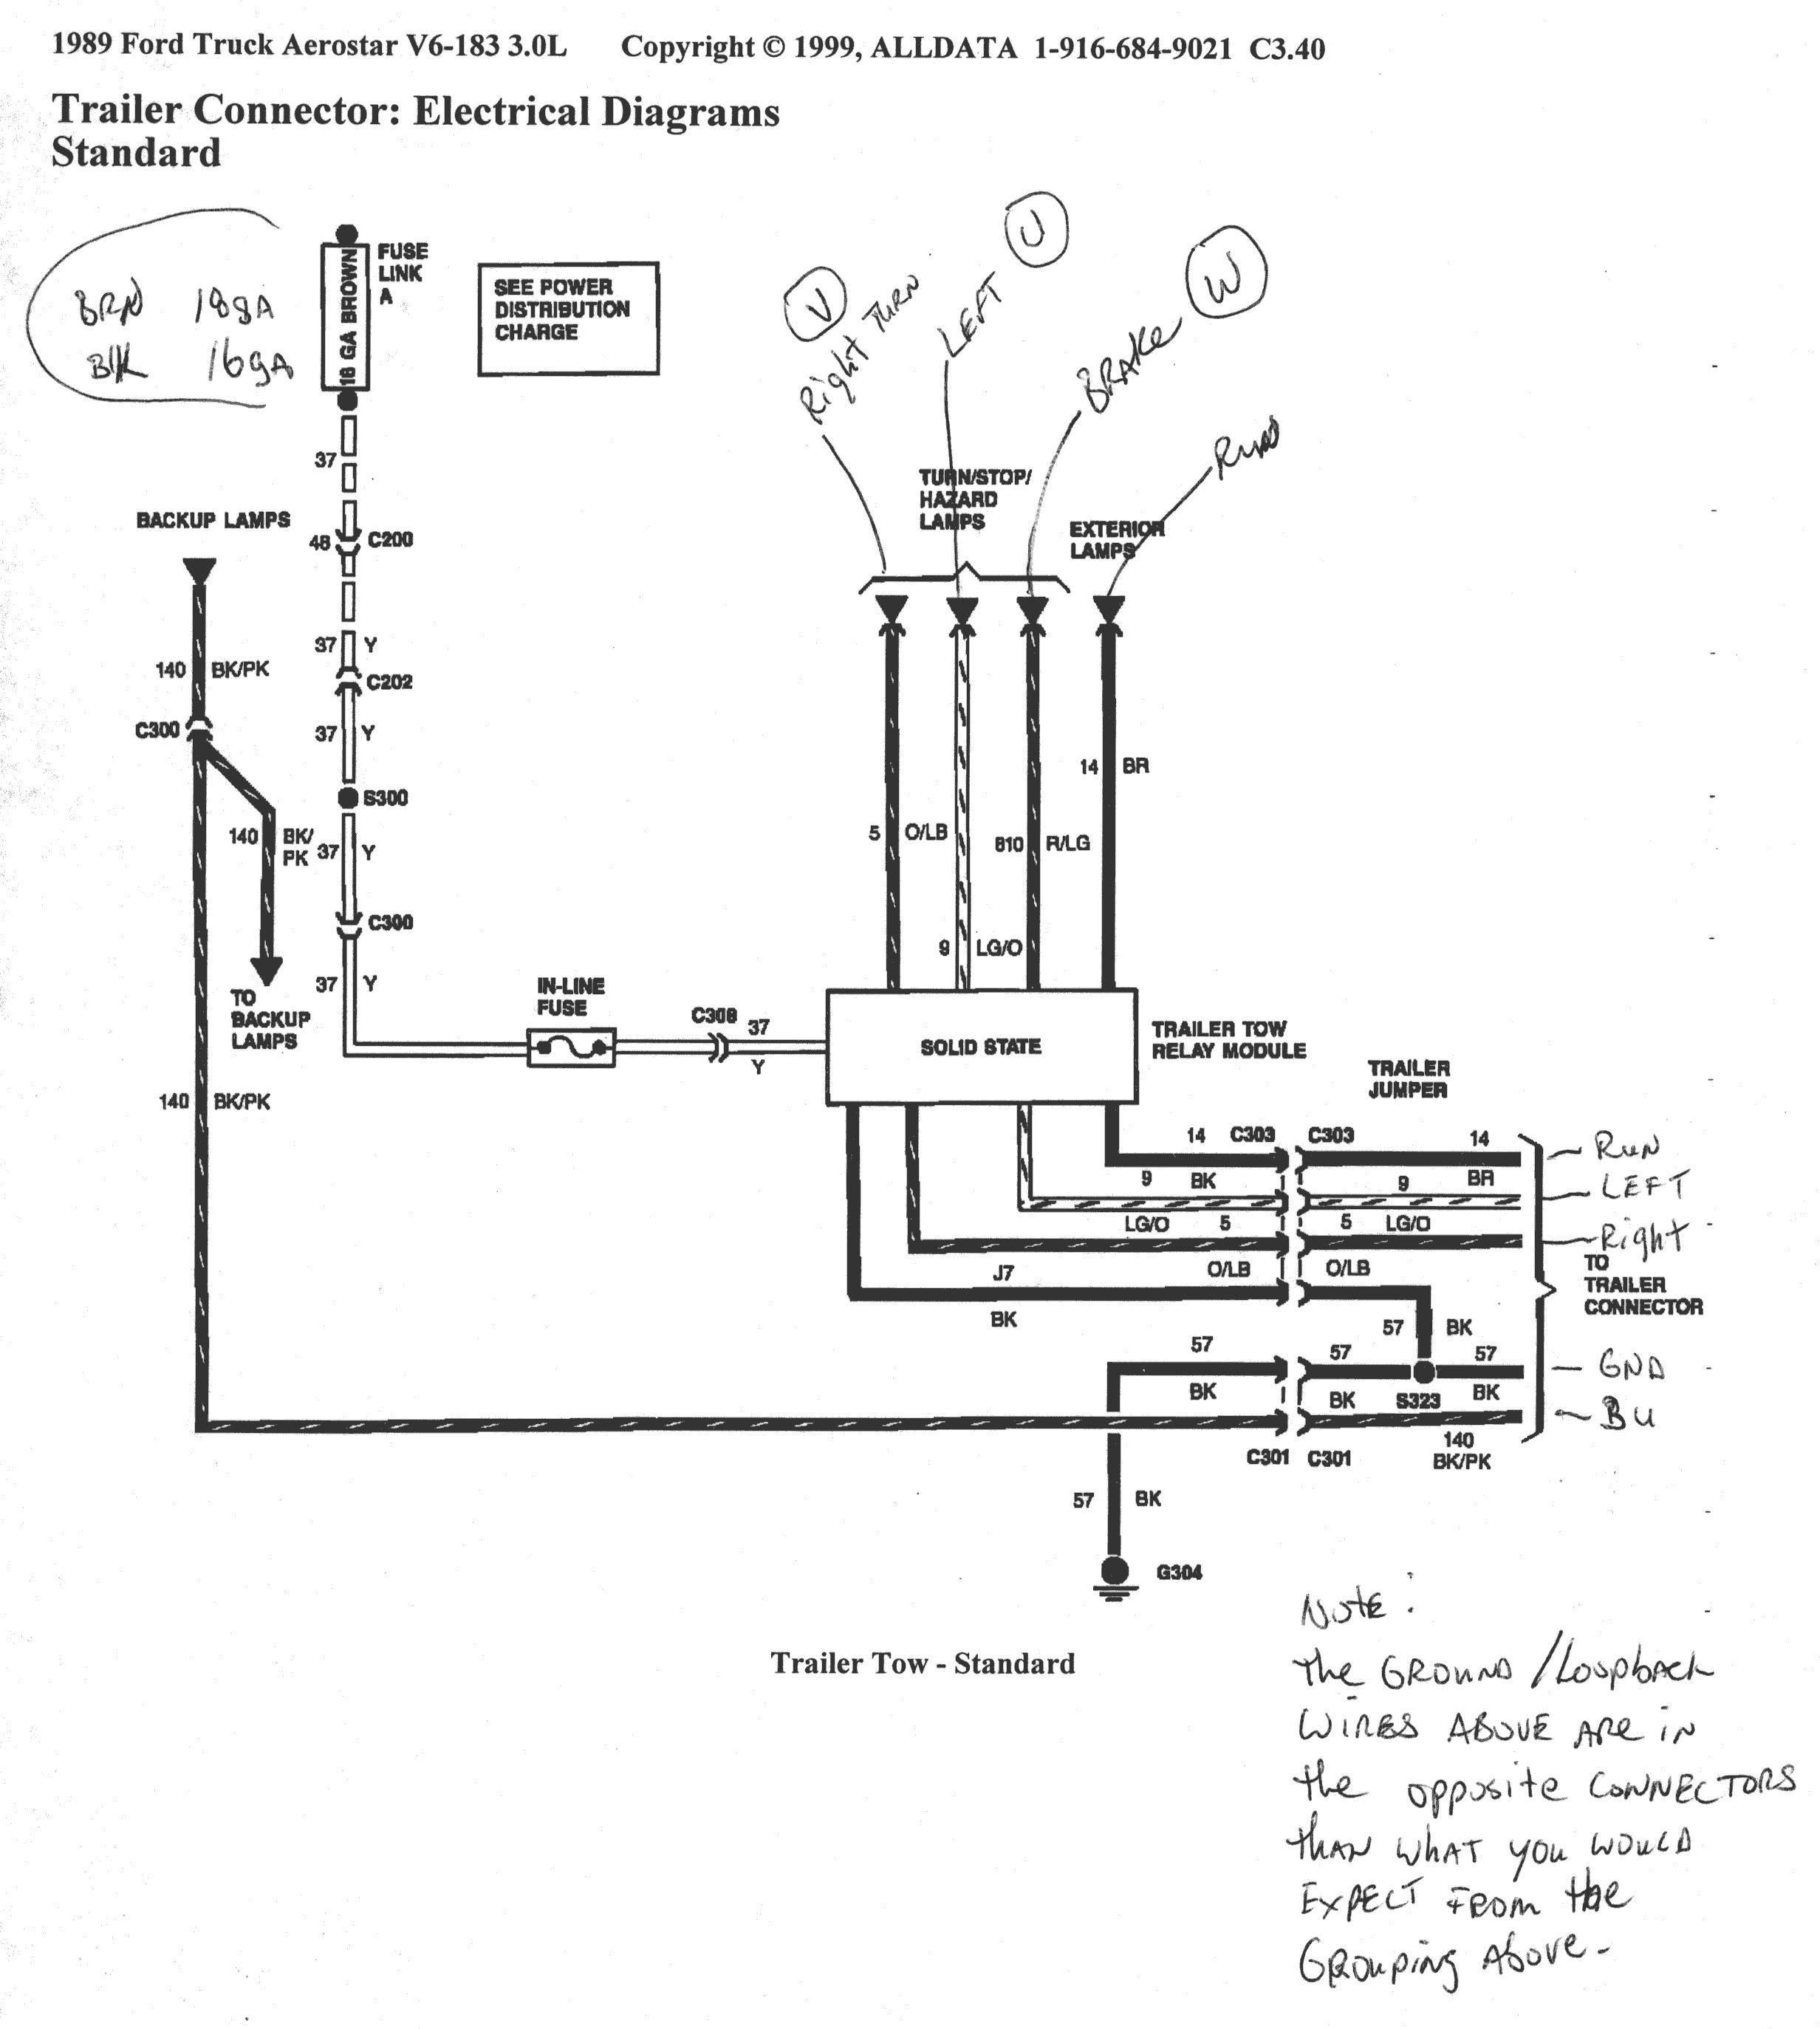 Wiring Diagram 7 Pin Trailer Plug Ford Reference For In Ireland New - 7 Pin Trailer Wiring Diagram Ford